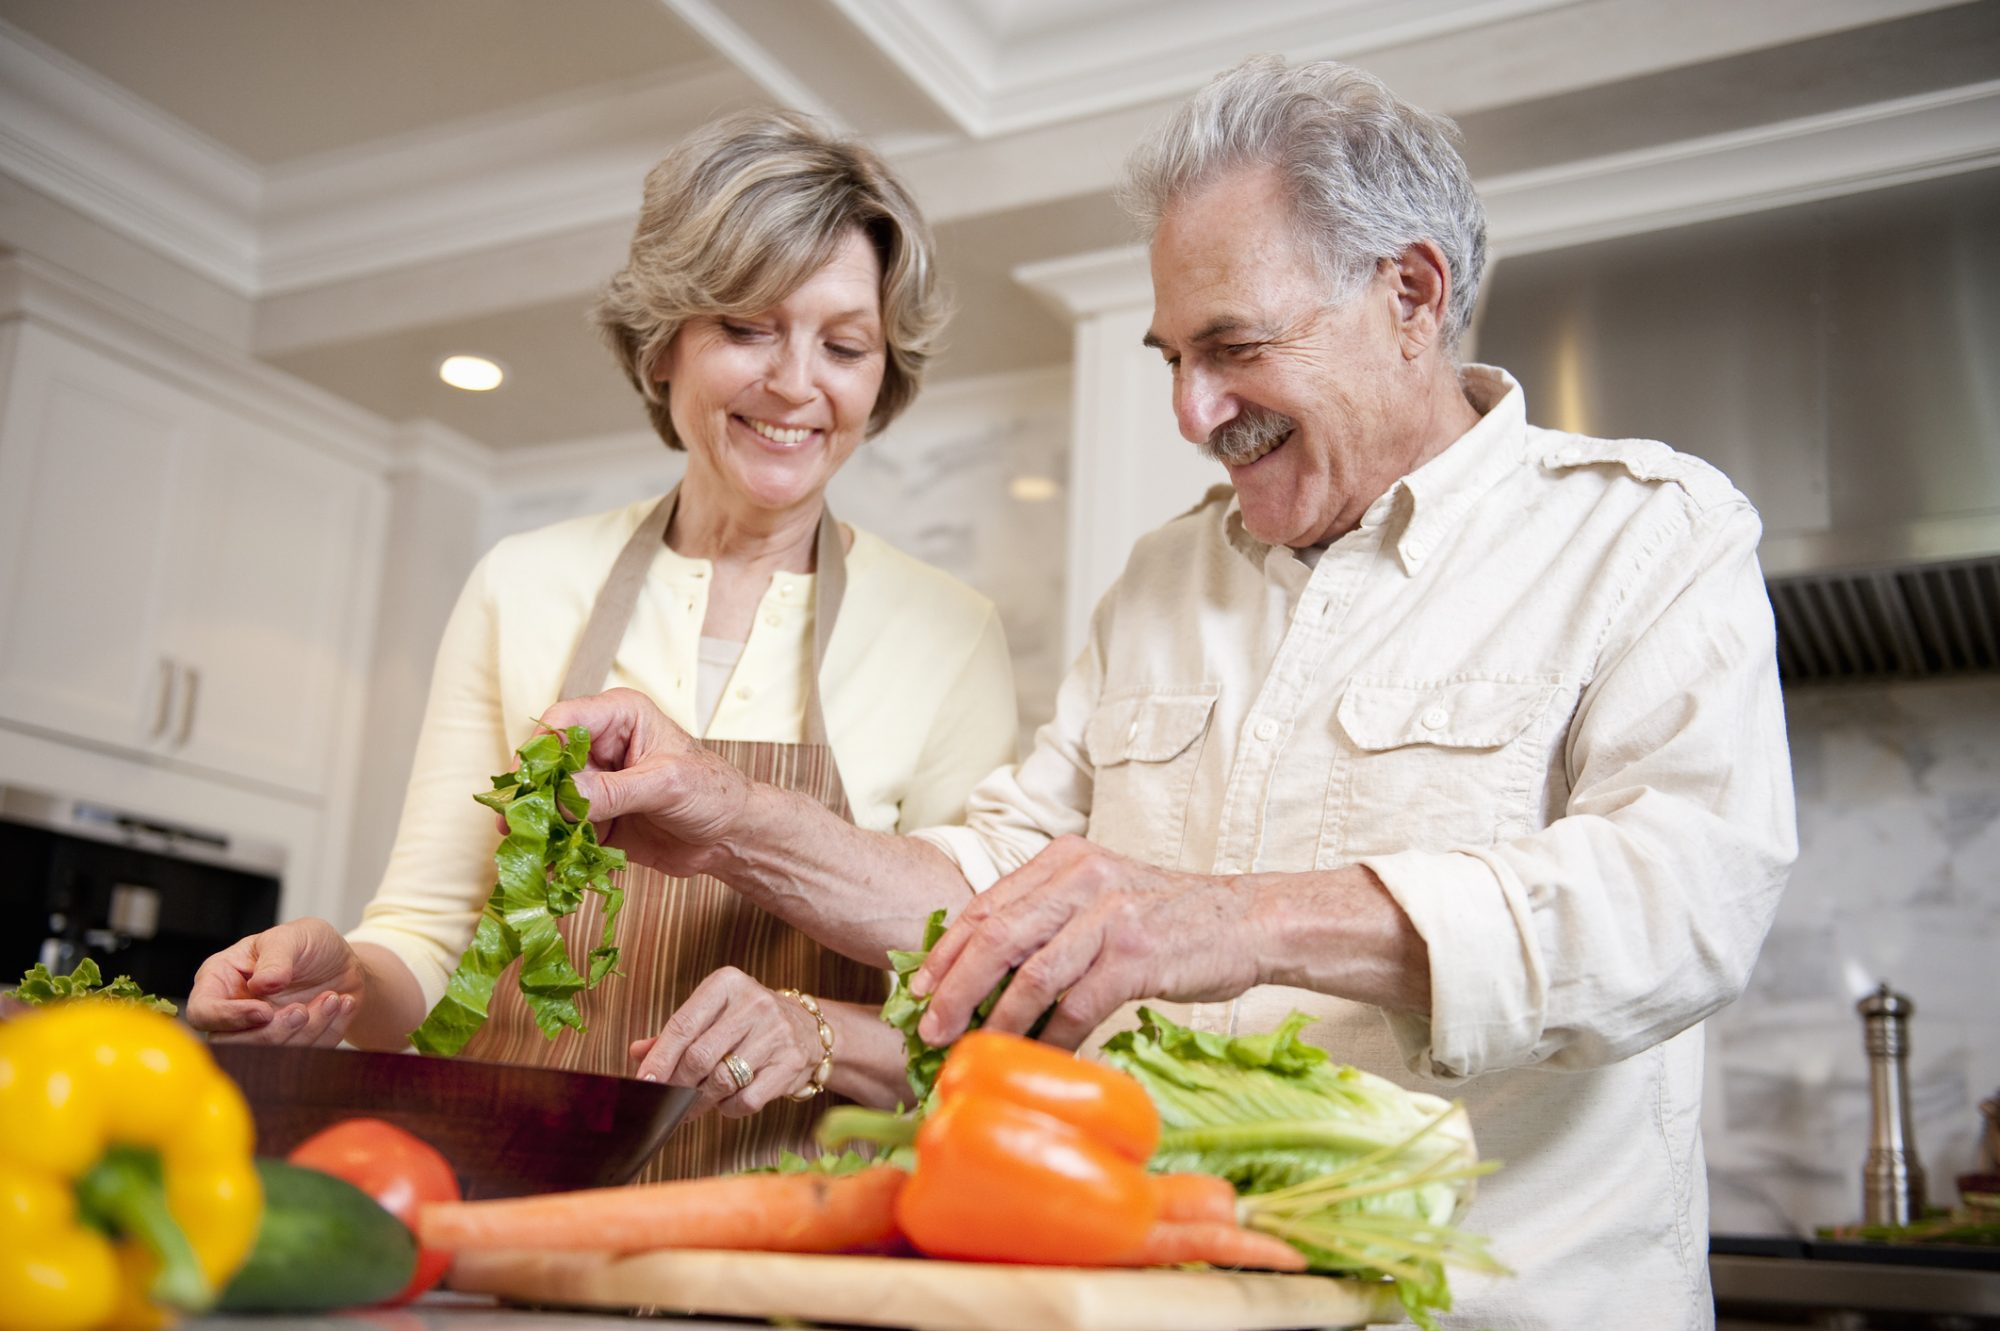 Couple Preparing Salad in Kitchen